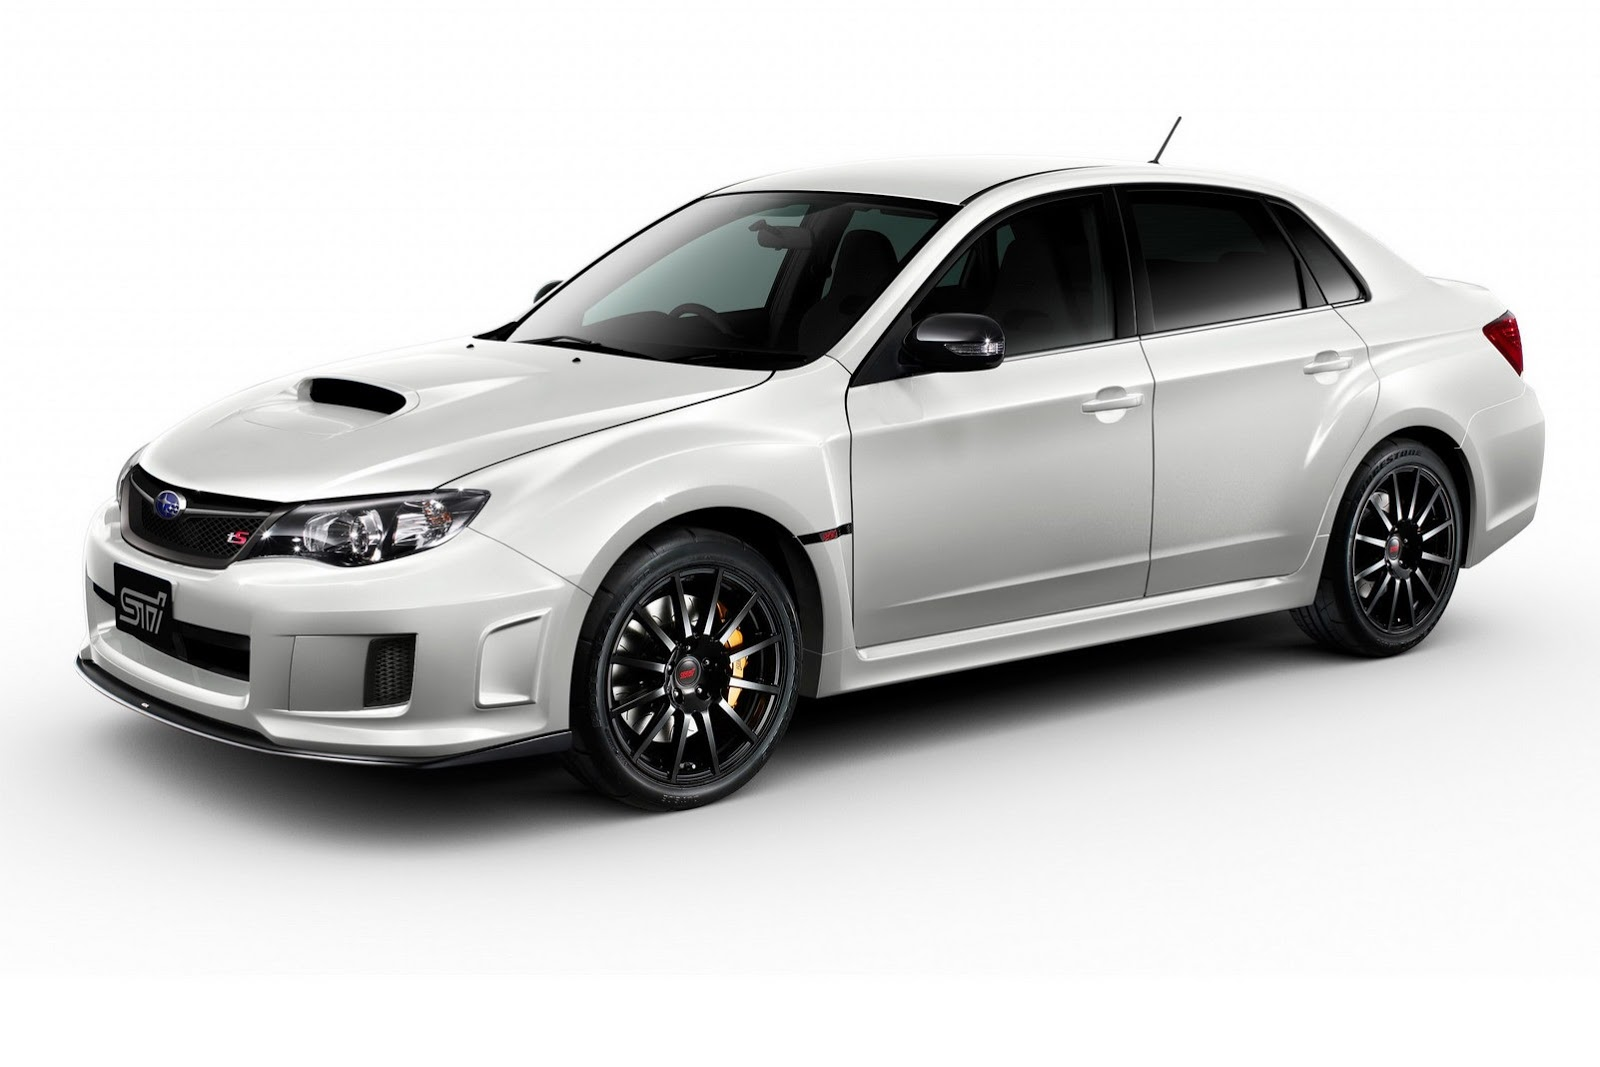 2018 subaru impreza wrx sti rendered hatchback subaru impreza concept1 2017 2018 best cars. Black Bedroom Furniture Sets. Home Design Ideas